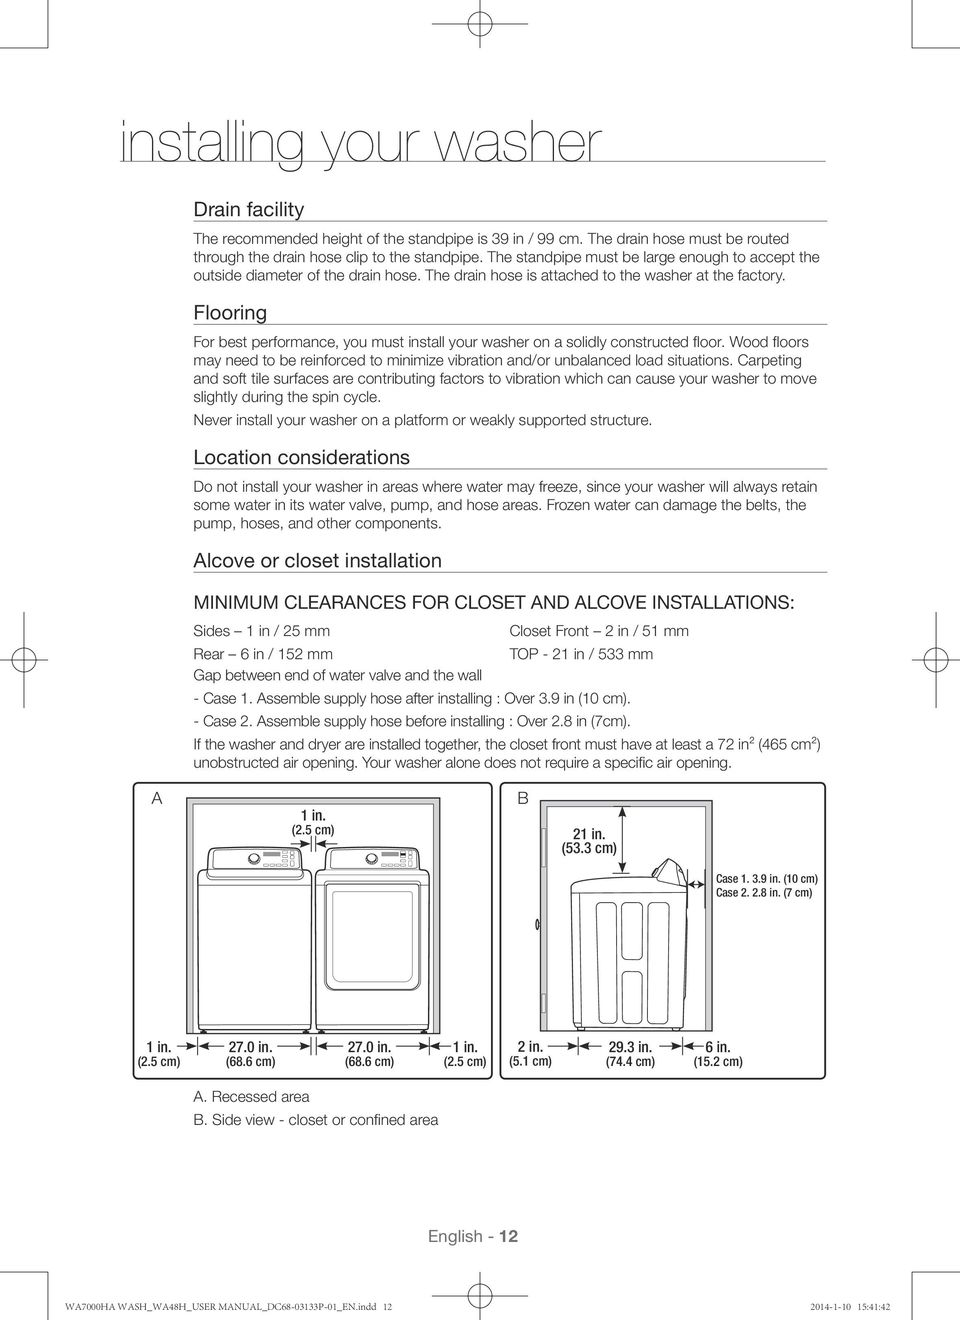 Washing Machine User Manual Imagine The Possibilities Pdf Drain Hose Additionally Wiring Diagram Flooring For Best Performance You Must Install Your Washer On A Solidly Constructed Floor